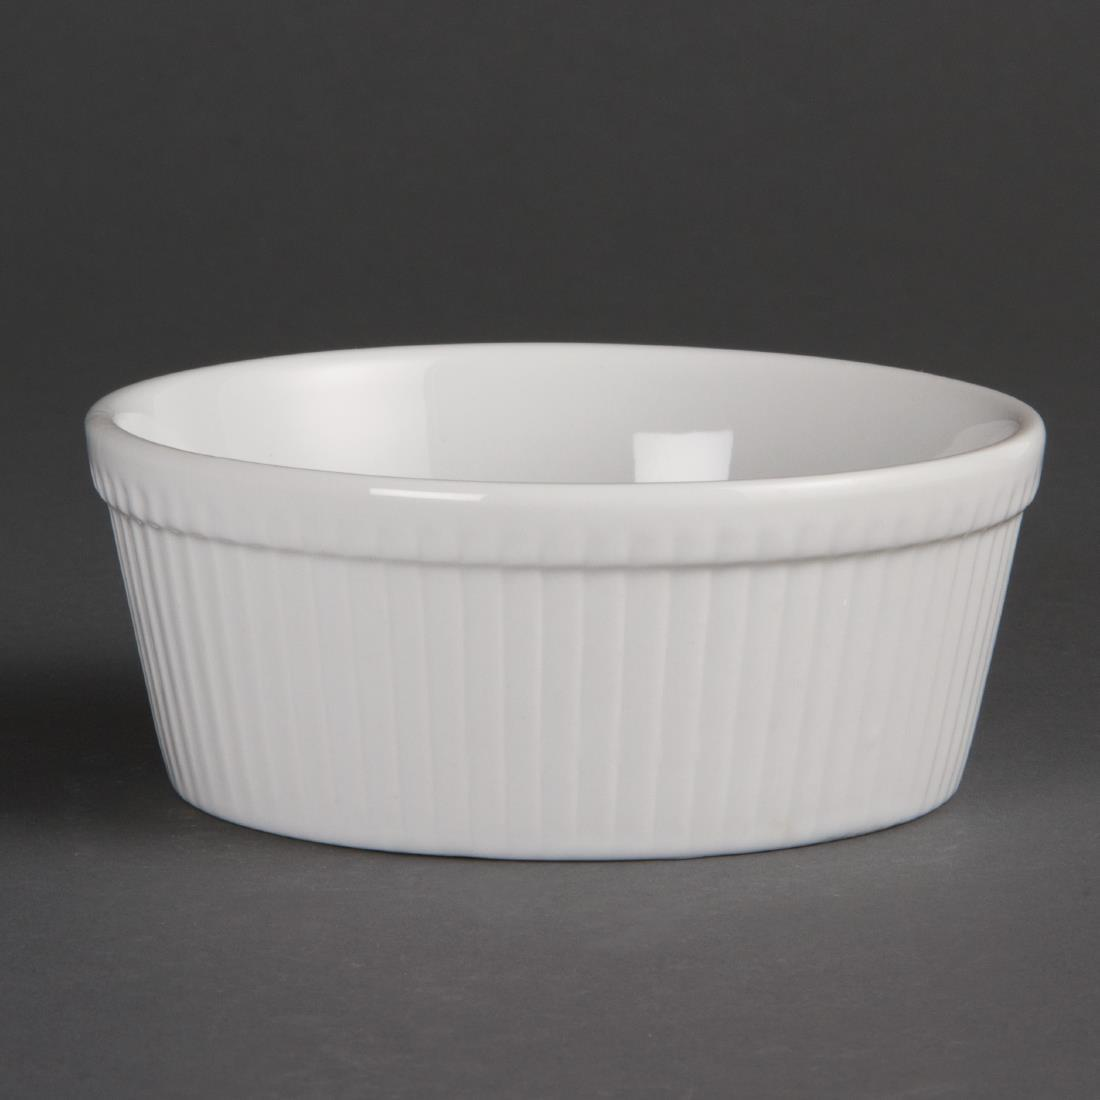 Olympia Whiteware Round Pie Dishes 134mm